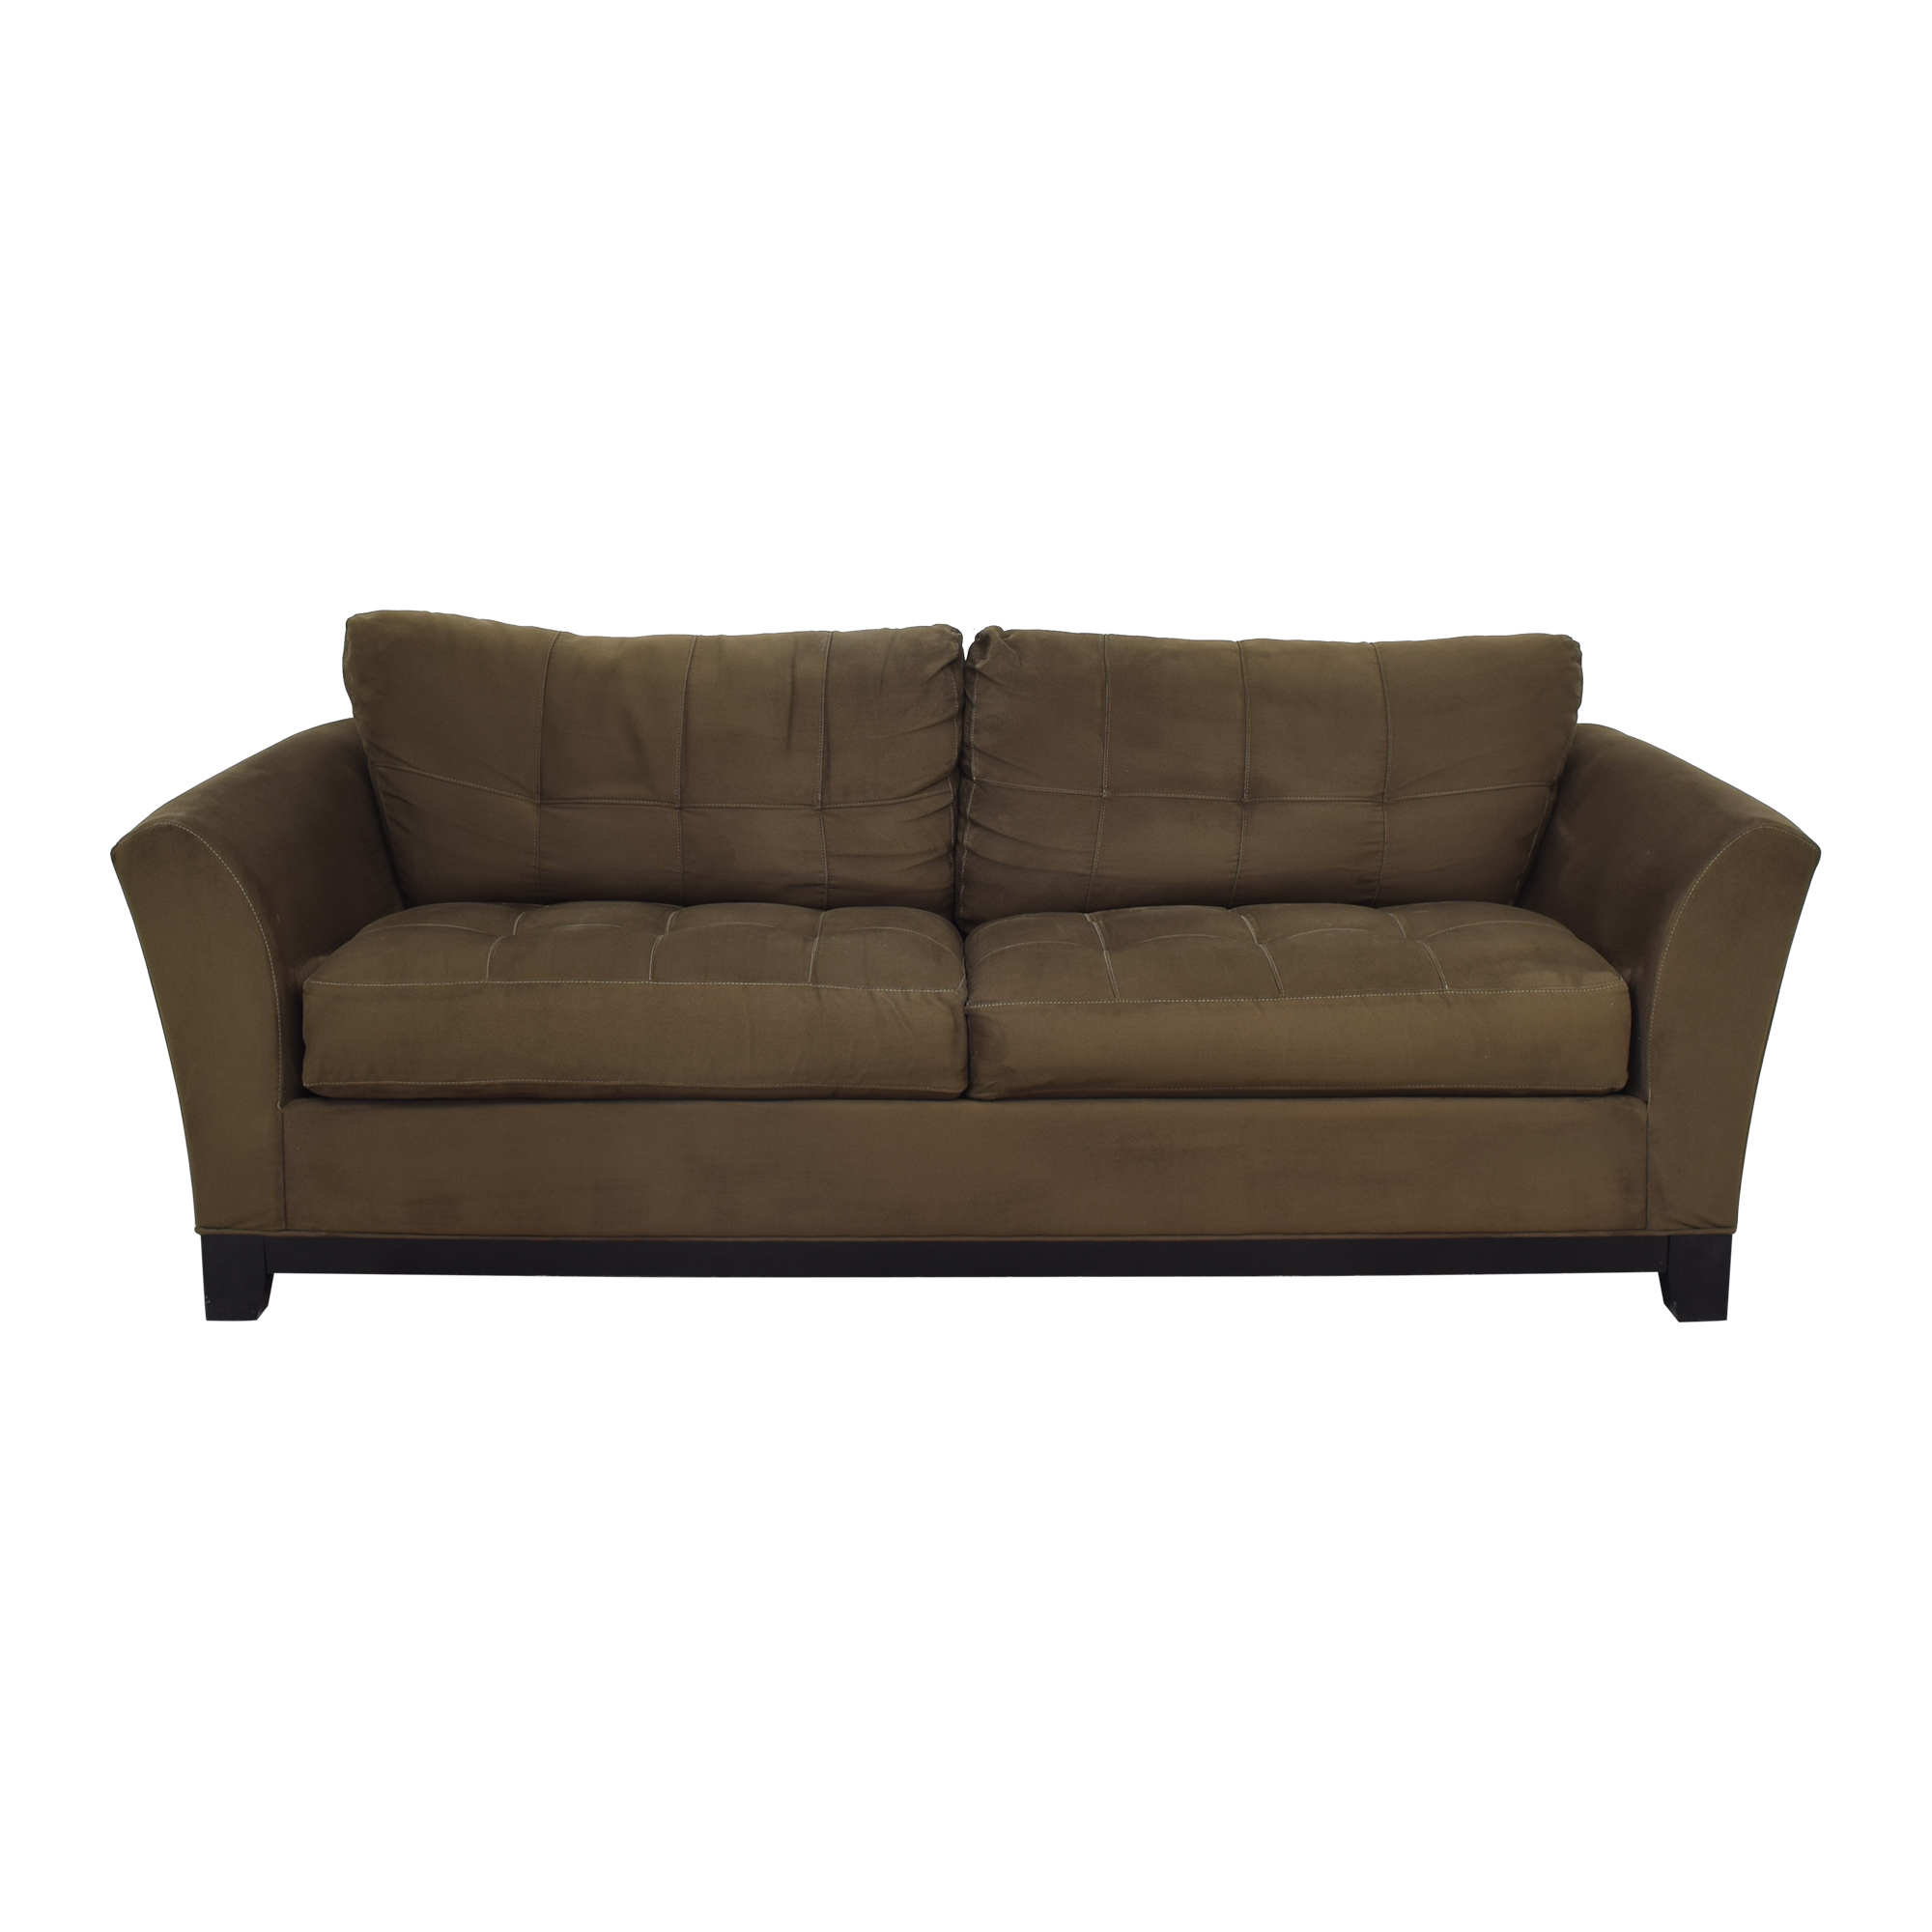 HM Richards Furniture HM Richards Furniture Loveseat with Ottoman used